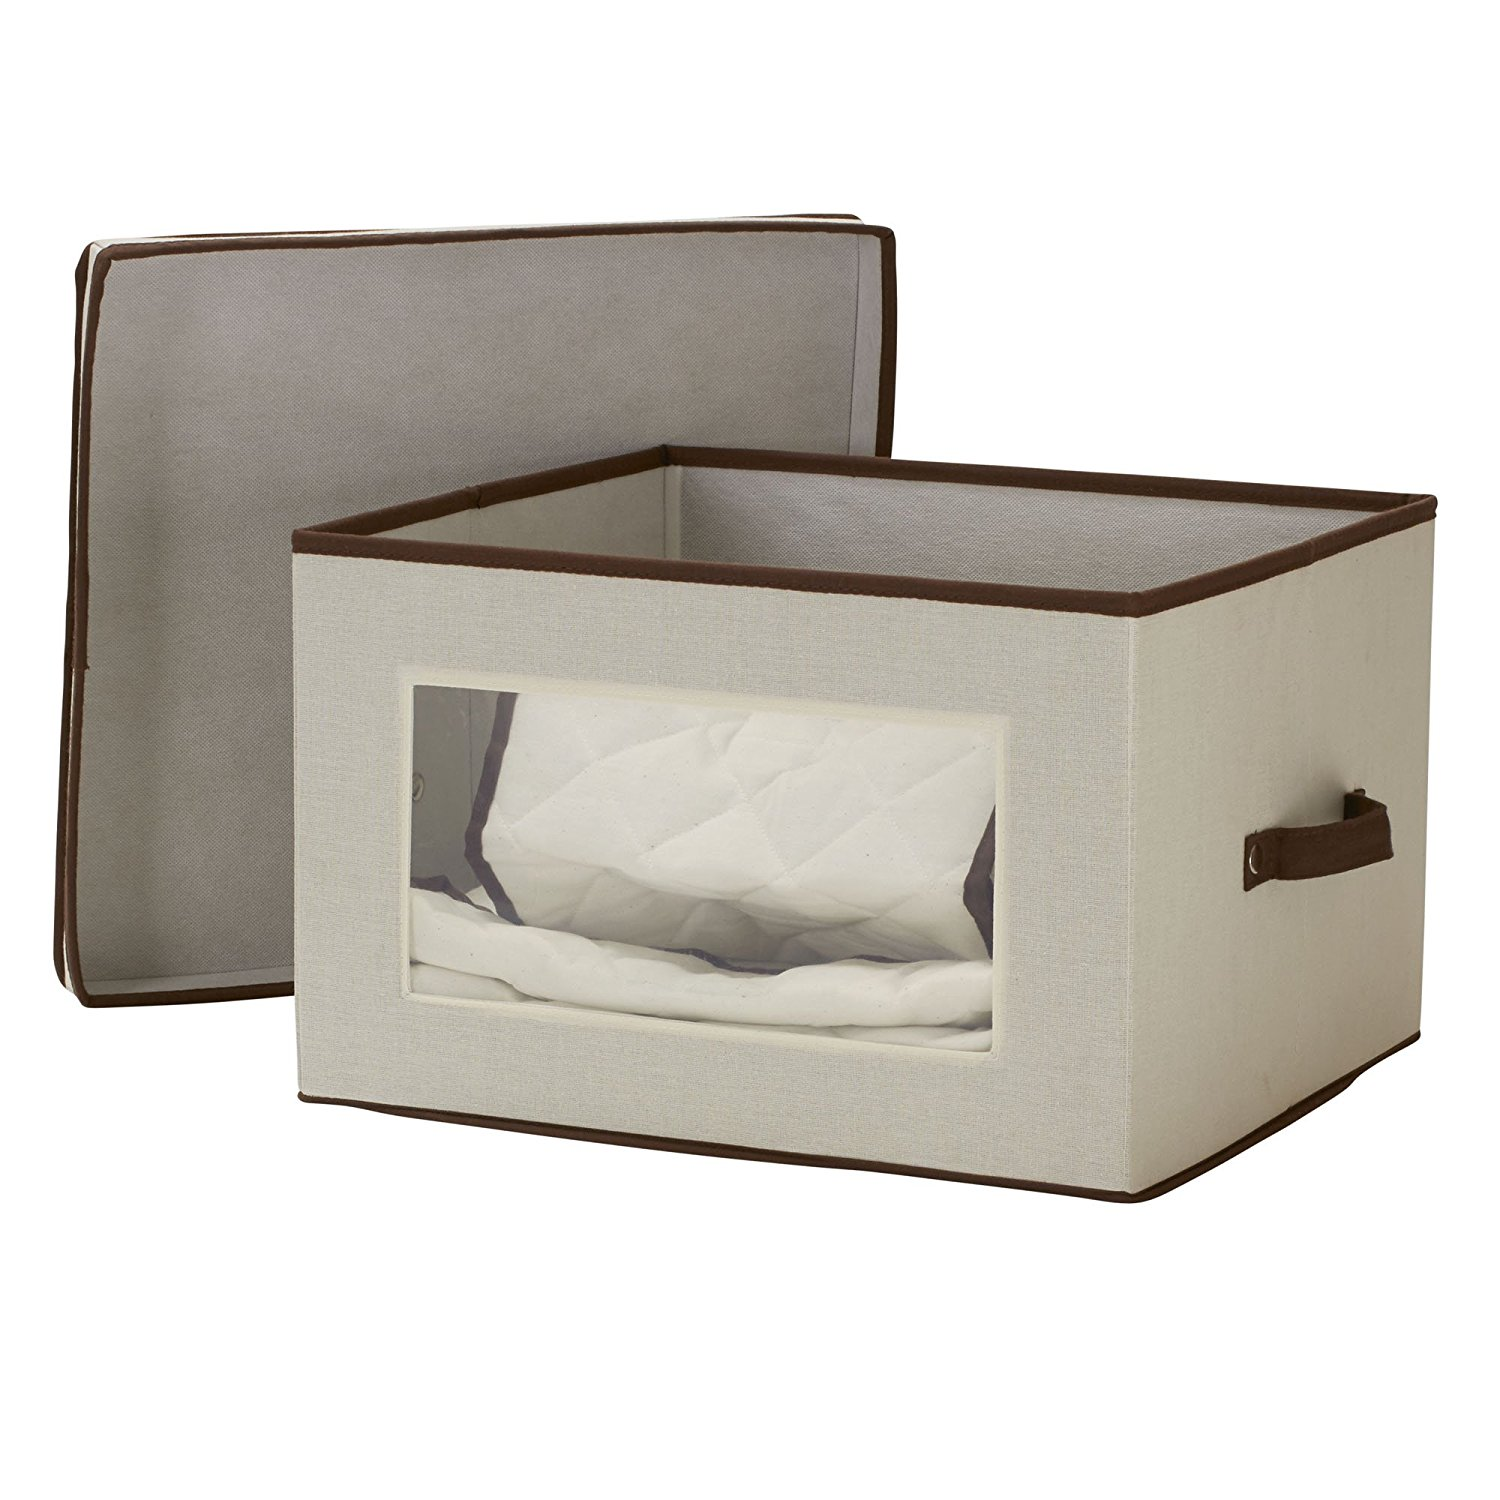 ... Piece China Storage With Quilted Pouches | Natural Canvas With Brown  Trim, DURABLE HARD SIDED Storage Box With Handles,.., By Household  Essentials